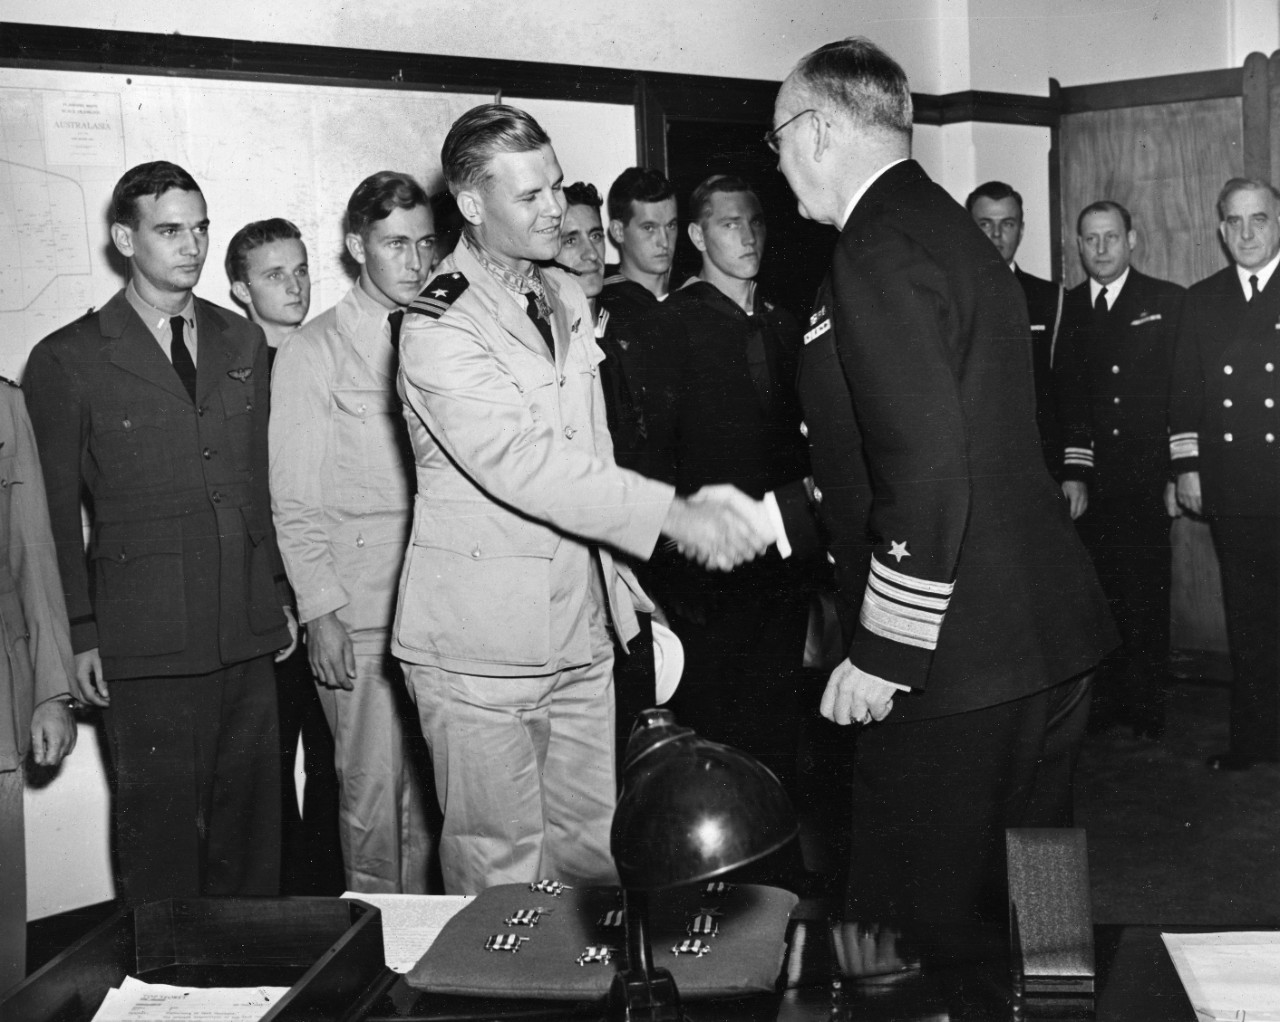 Vice Admiral Thomas C. Kinkaid, USN (right) (Commander, Seventh Fleet) and Lieutenant Nathan G. Gordon, USNR (left) shaking hands after Gordon was presented the Medal of Honor at Seventh Fleet Headquarters on 19 August 1944.